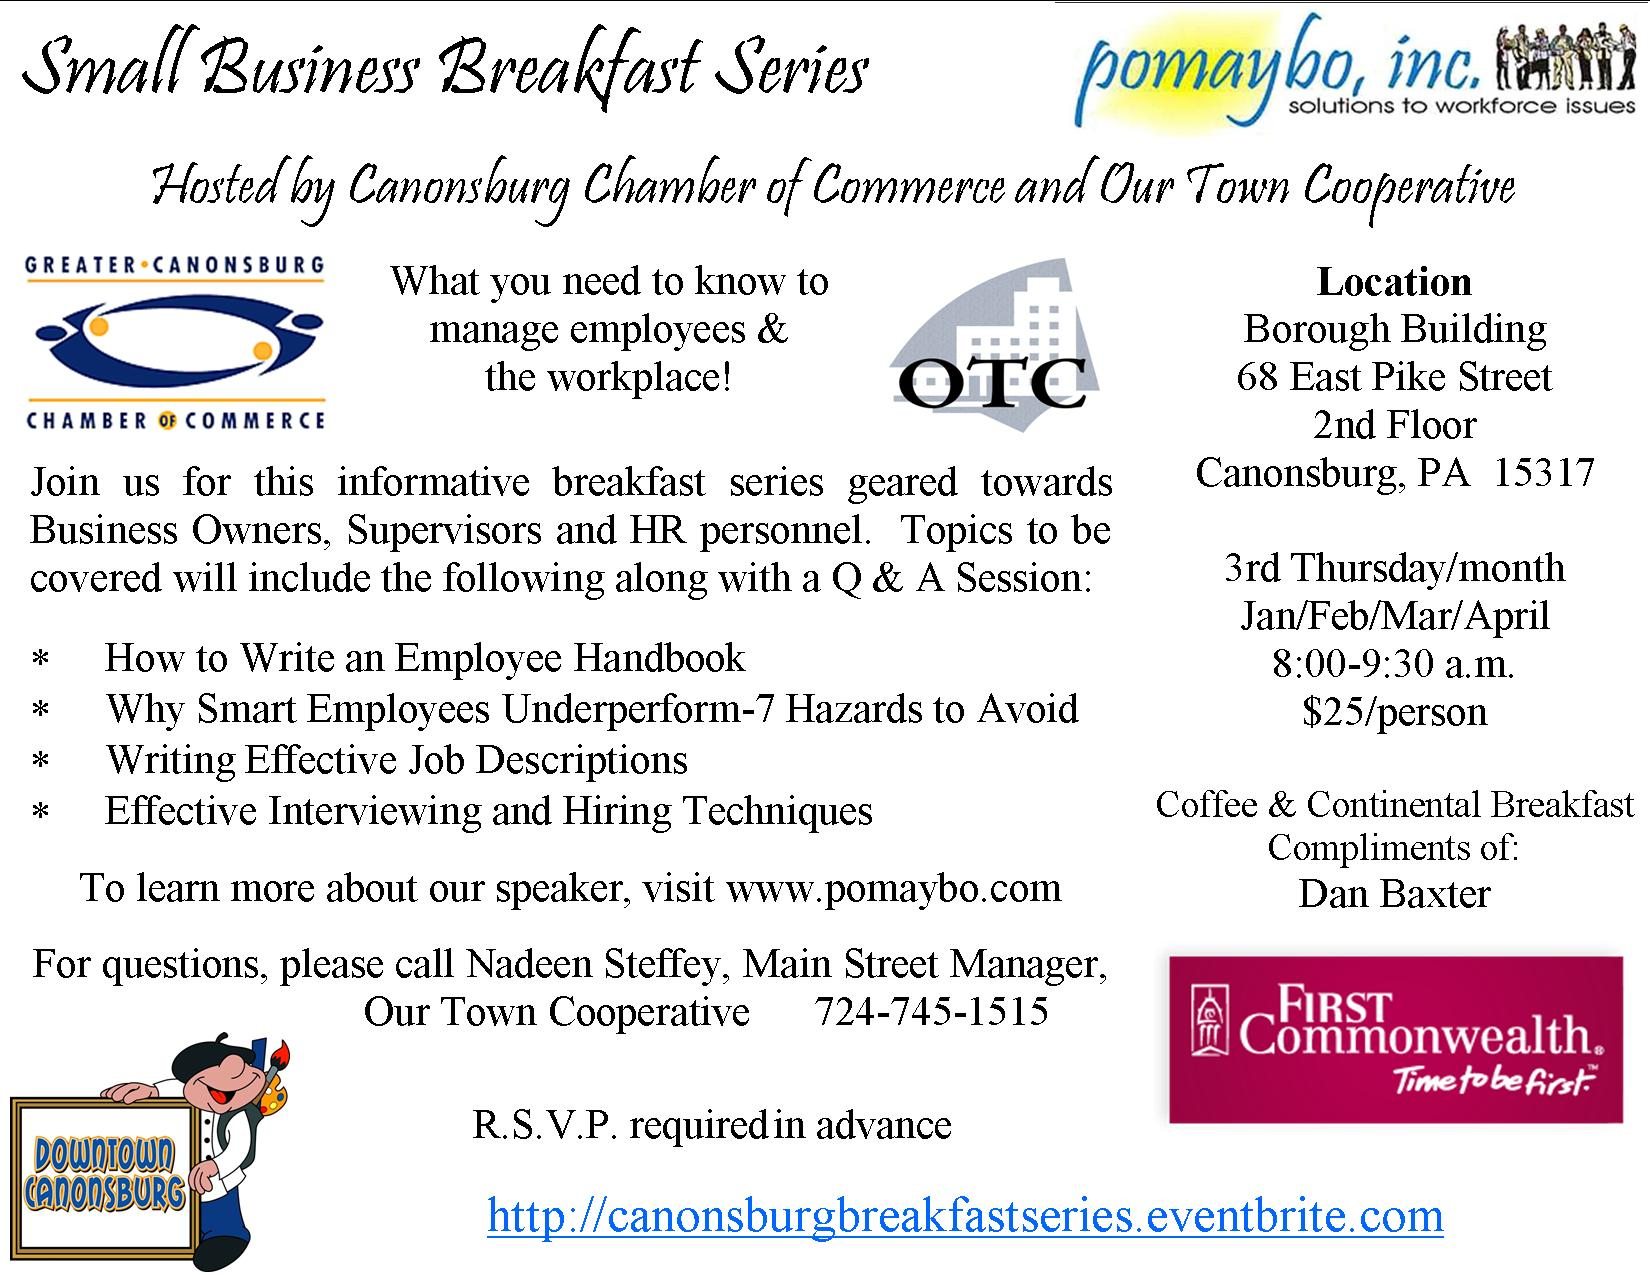 Small Business Breakfast Series